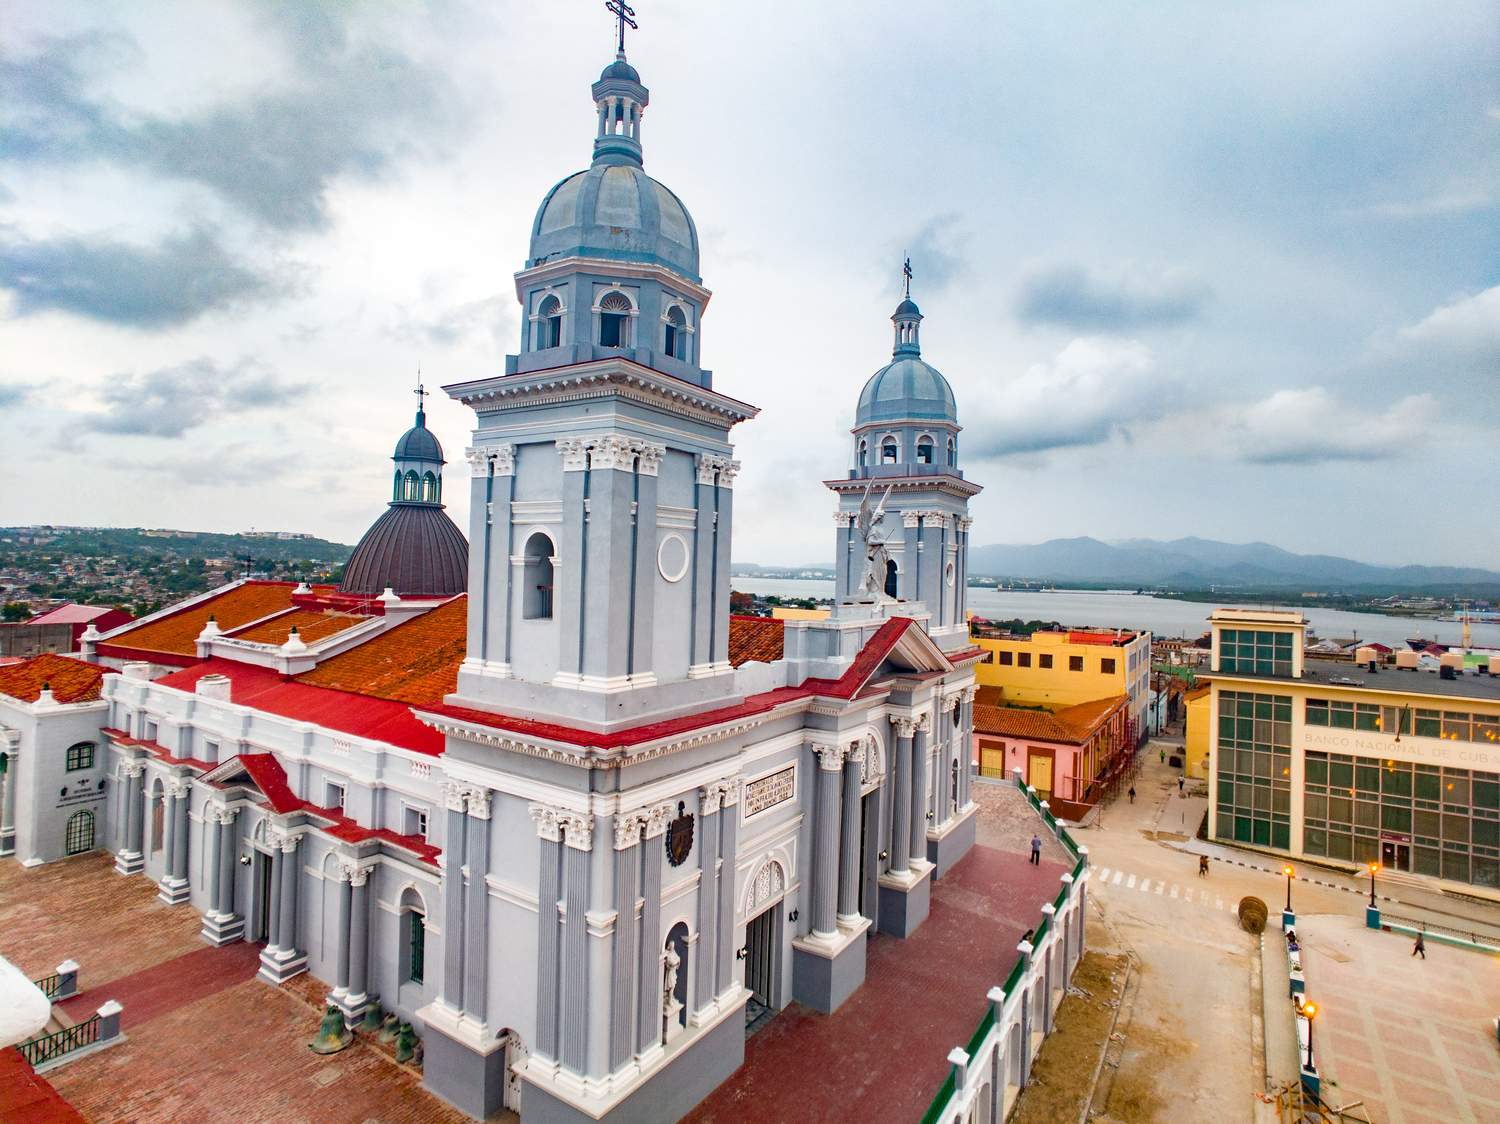 Cathedral Basilica of Our Lady of the Assumption in Santiago de Cuba